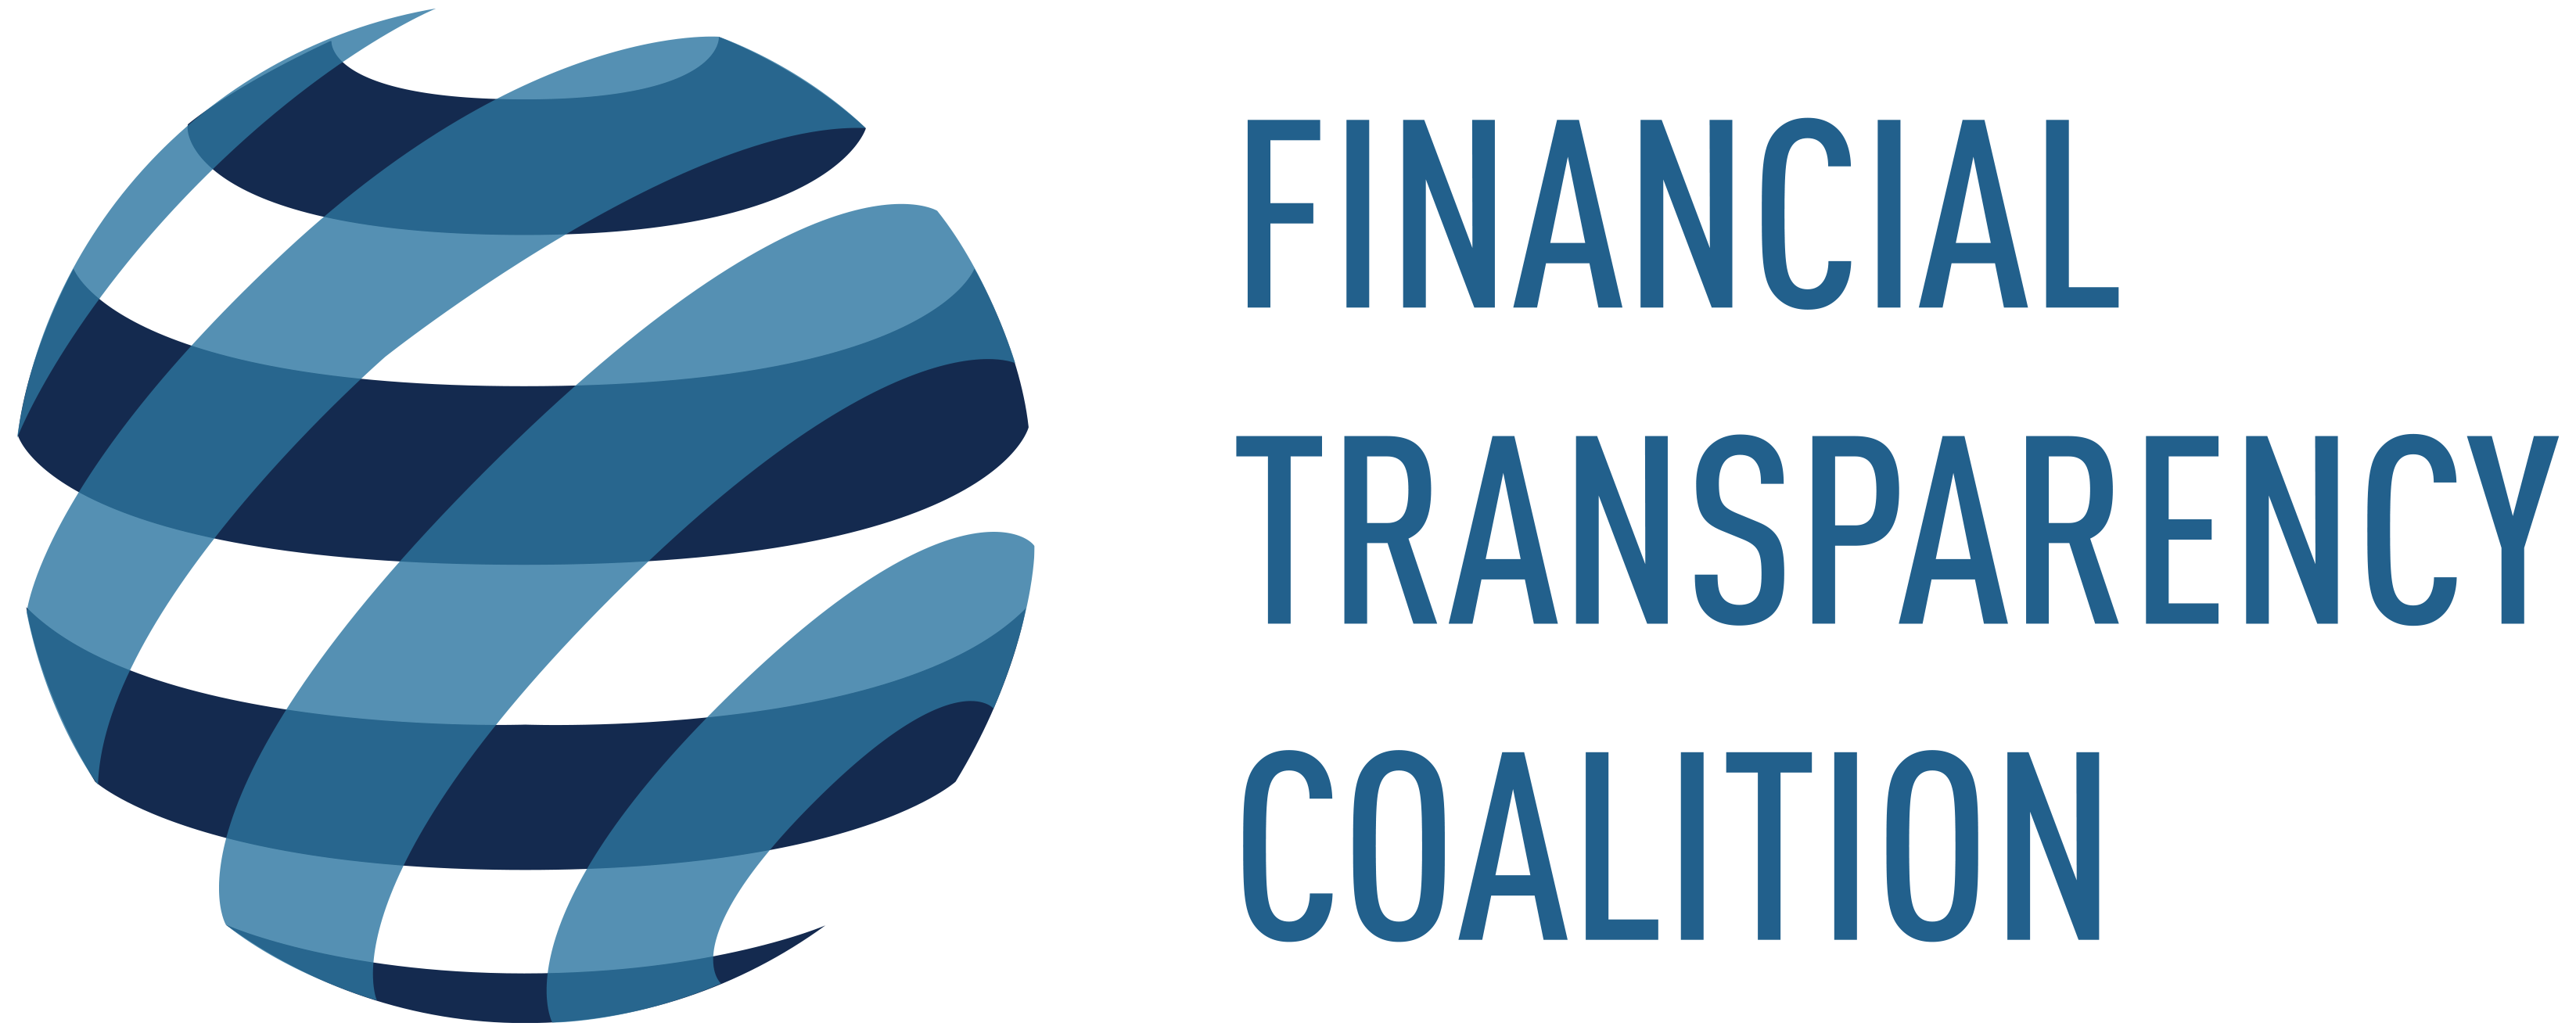 Financial Transparency Coalition Logo